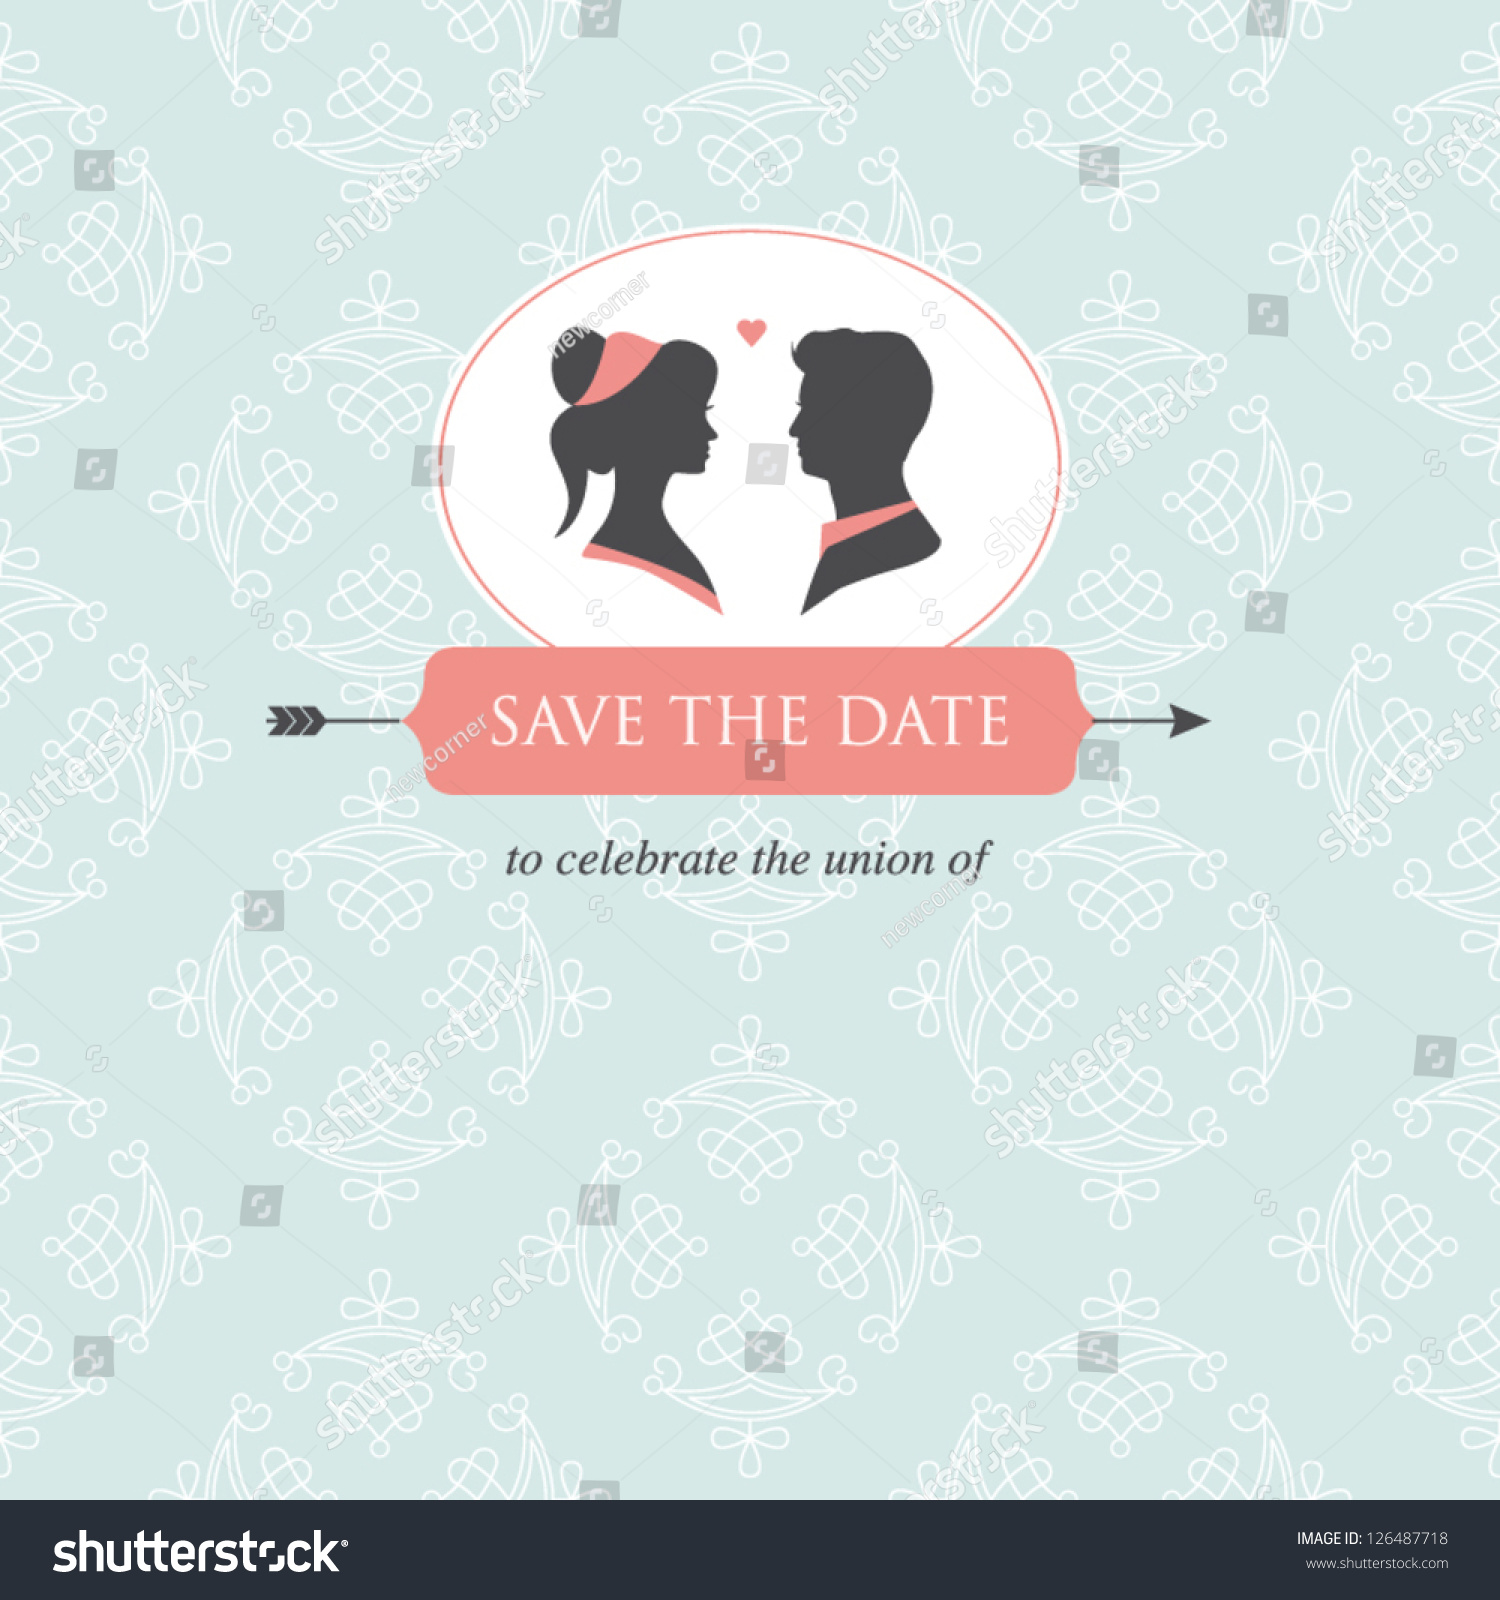 wedding invitation card template editable wedding stock vector 126487718 shutterstock. Black Bedroom Furniture Sets. Home Design Ideas